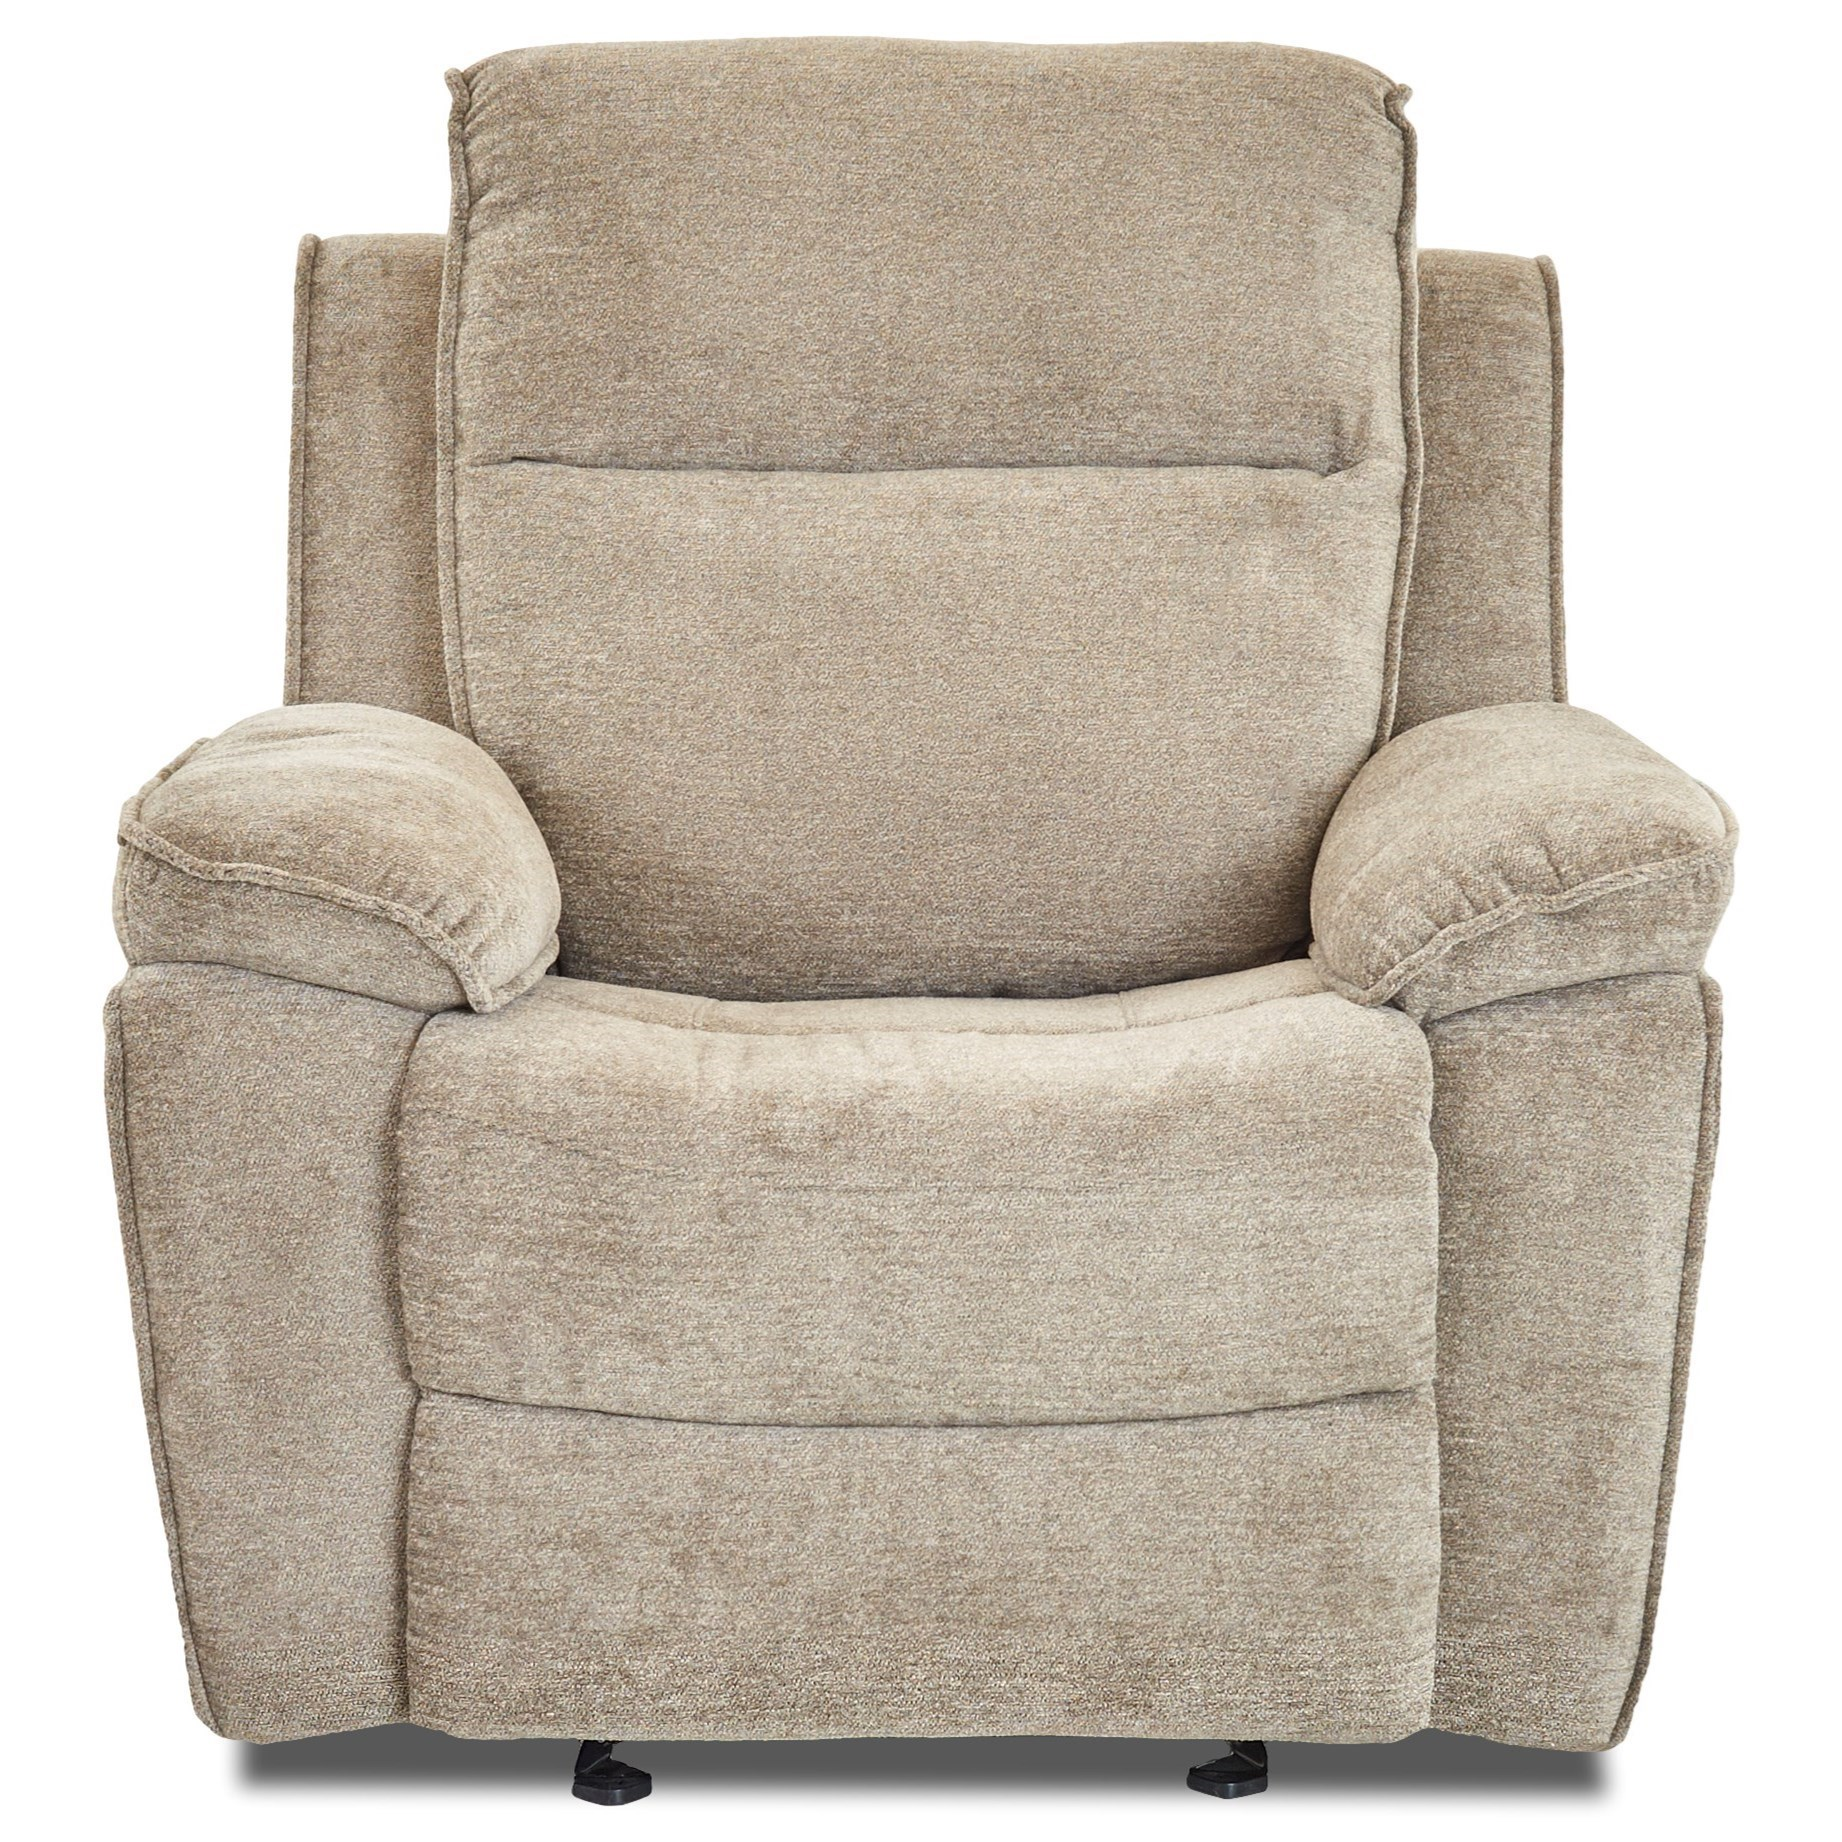 Casual Gliding Reclining Chair with Bucket Seat and Pillow Arms